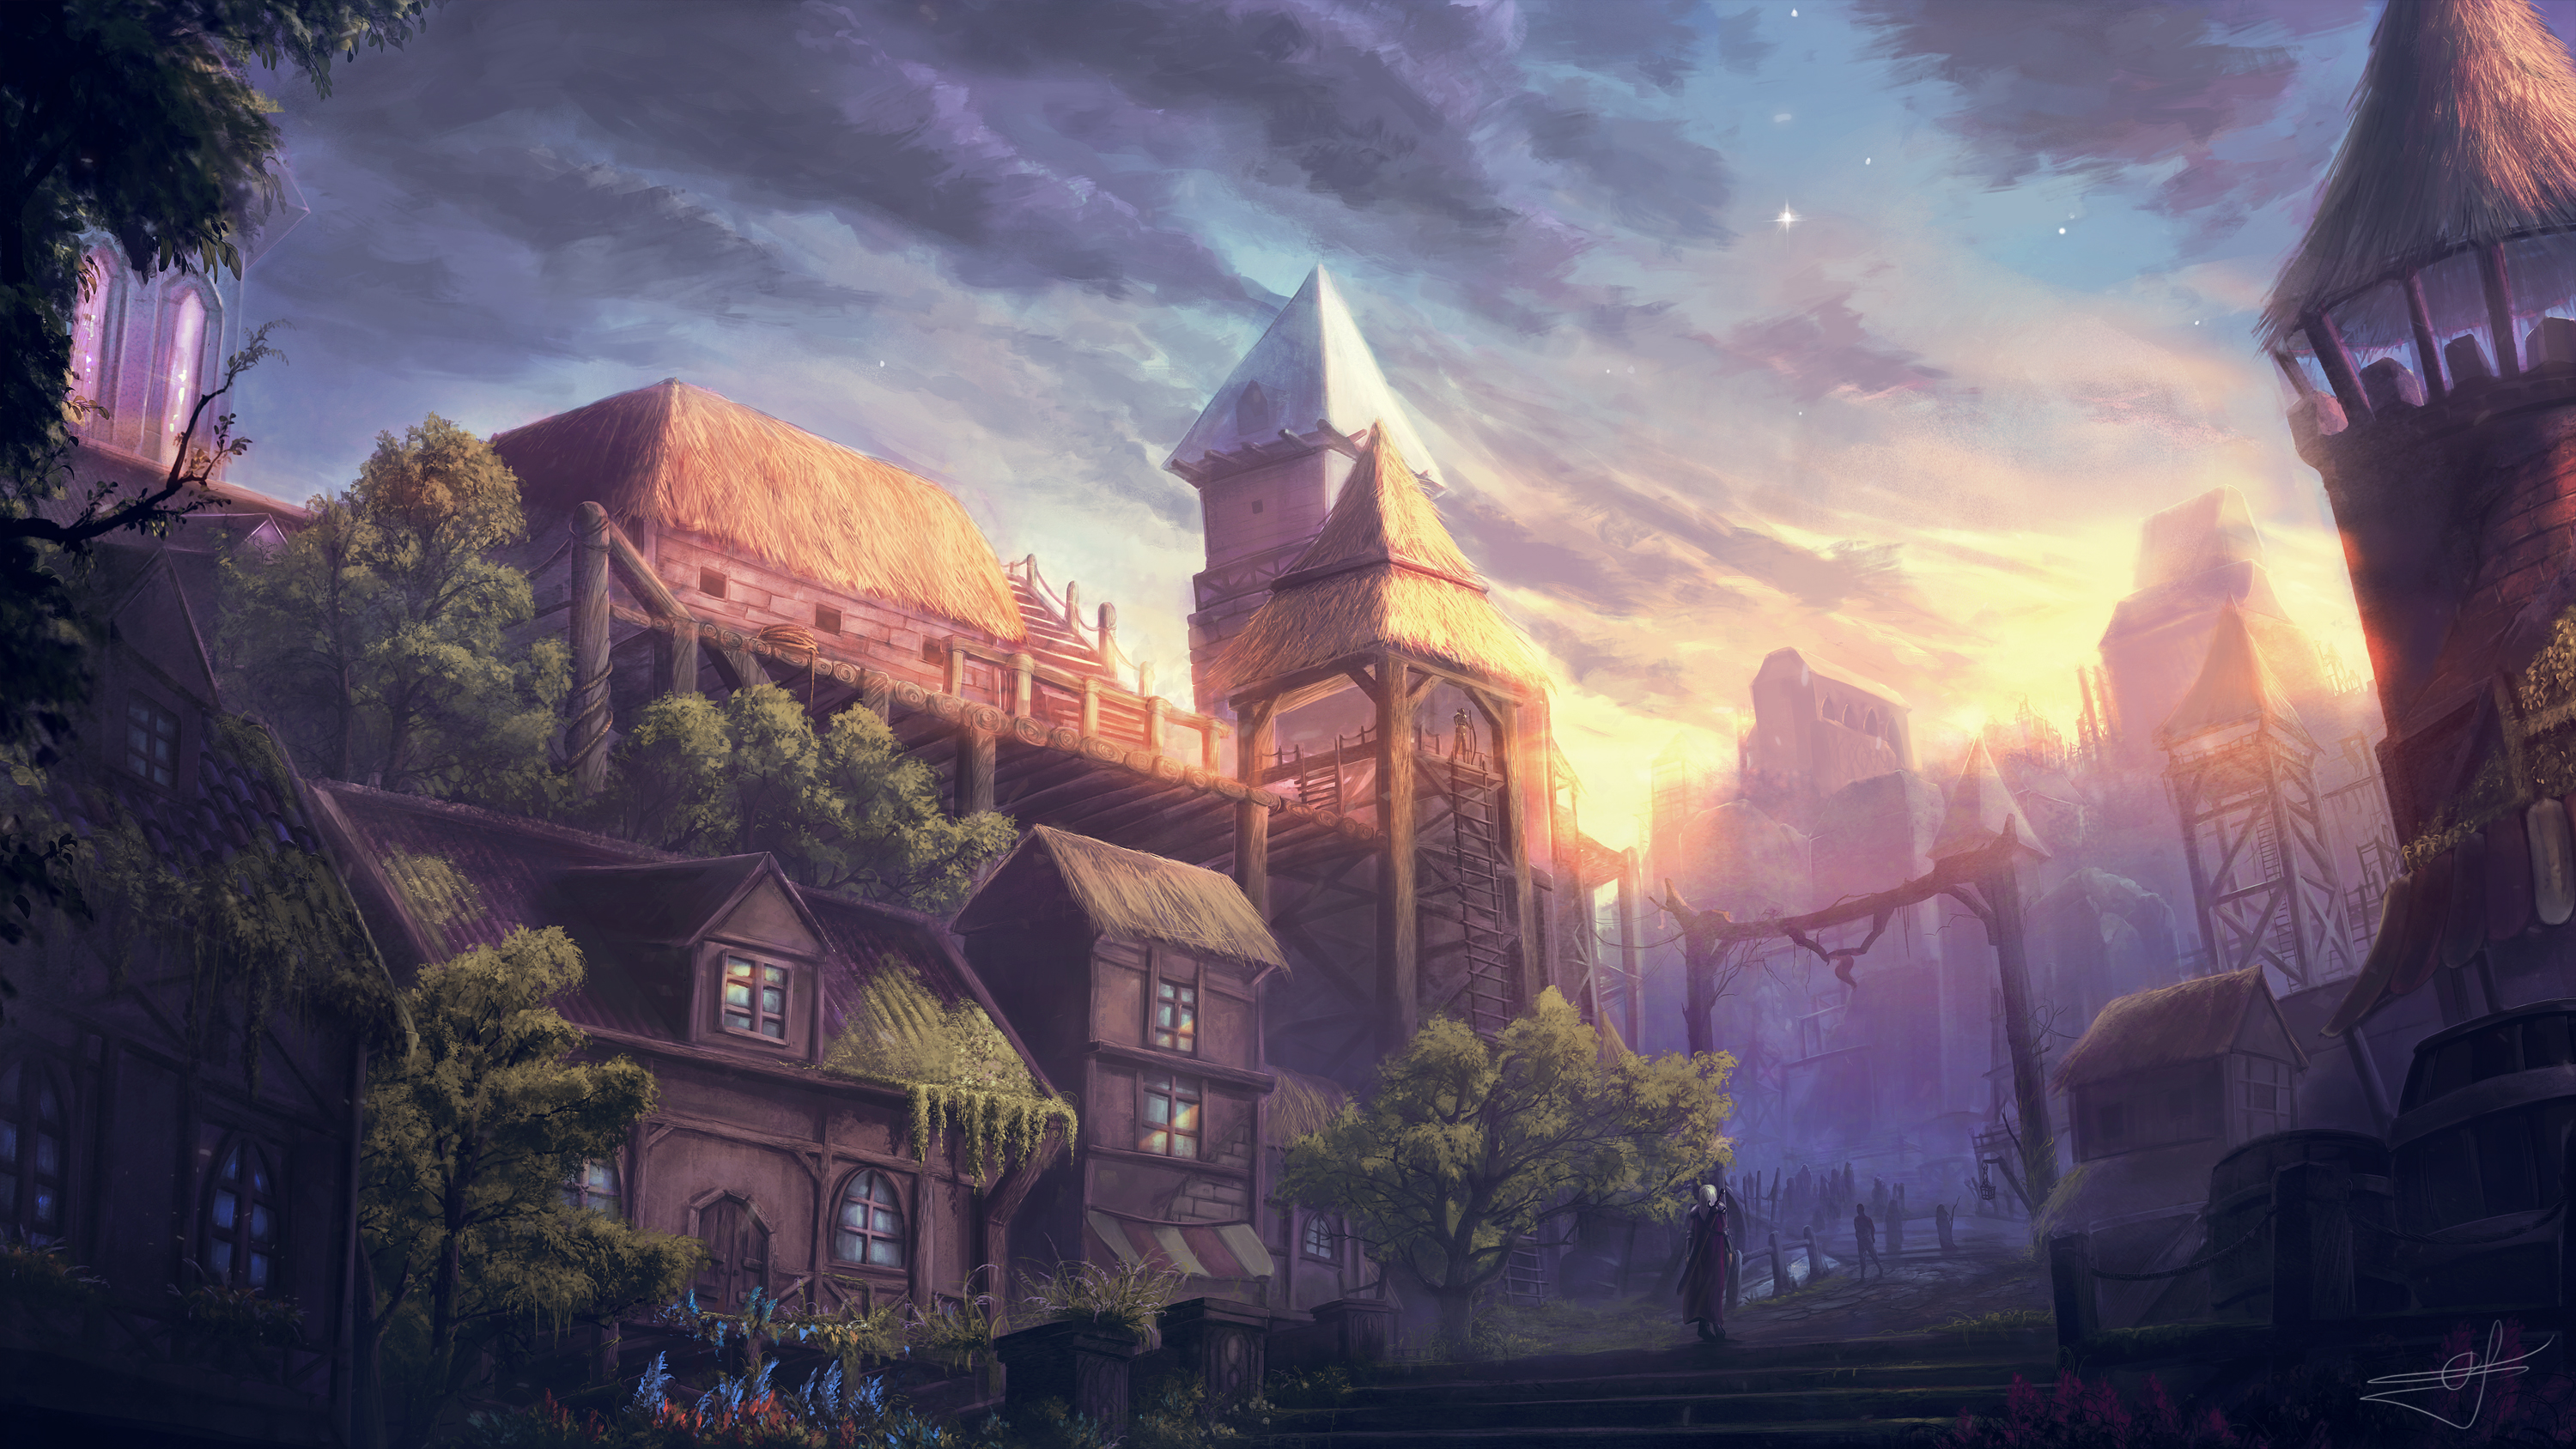 Fantasy City Wallpaper Hd: 2560x1440 Old City Fantasy 1440P Resolution HD 4k